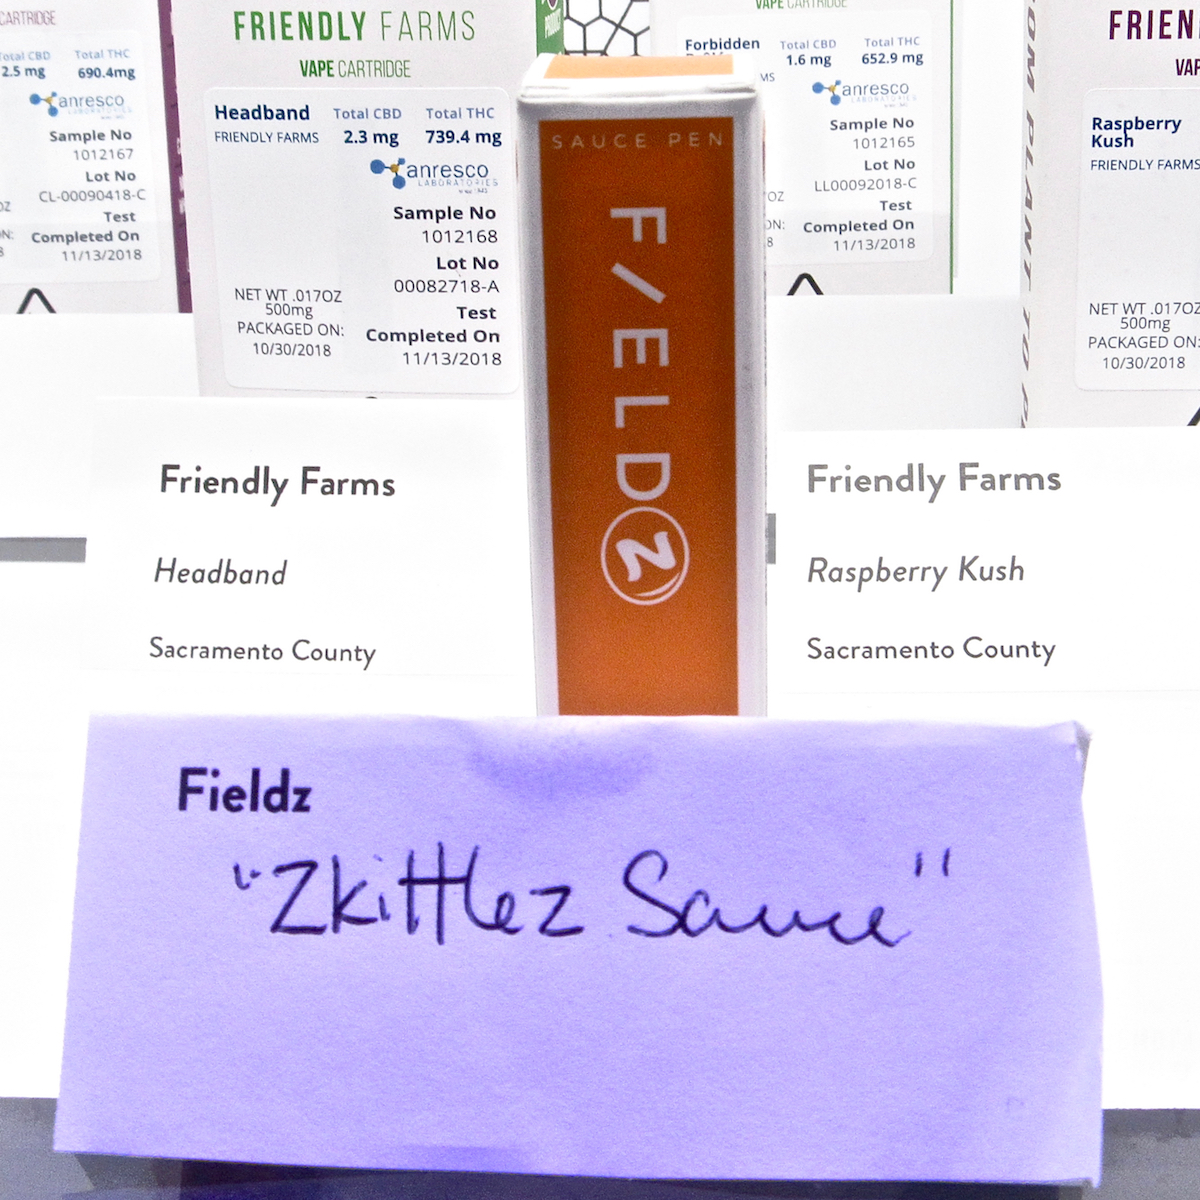 Fields extracts plus Zkittlez strain yields Fieldz. (David Downs/Leafly)